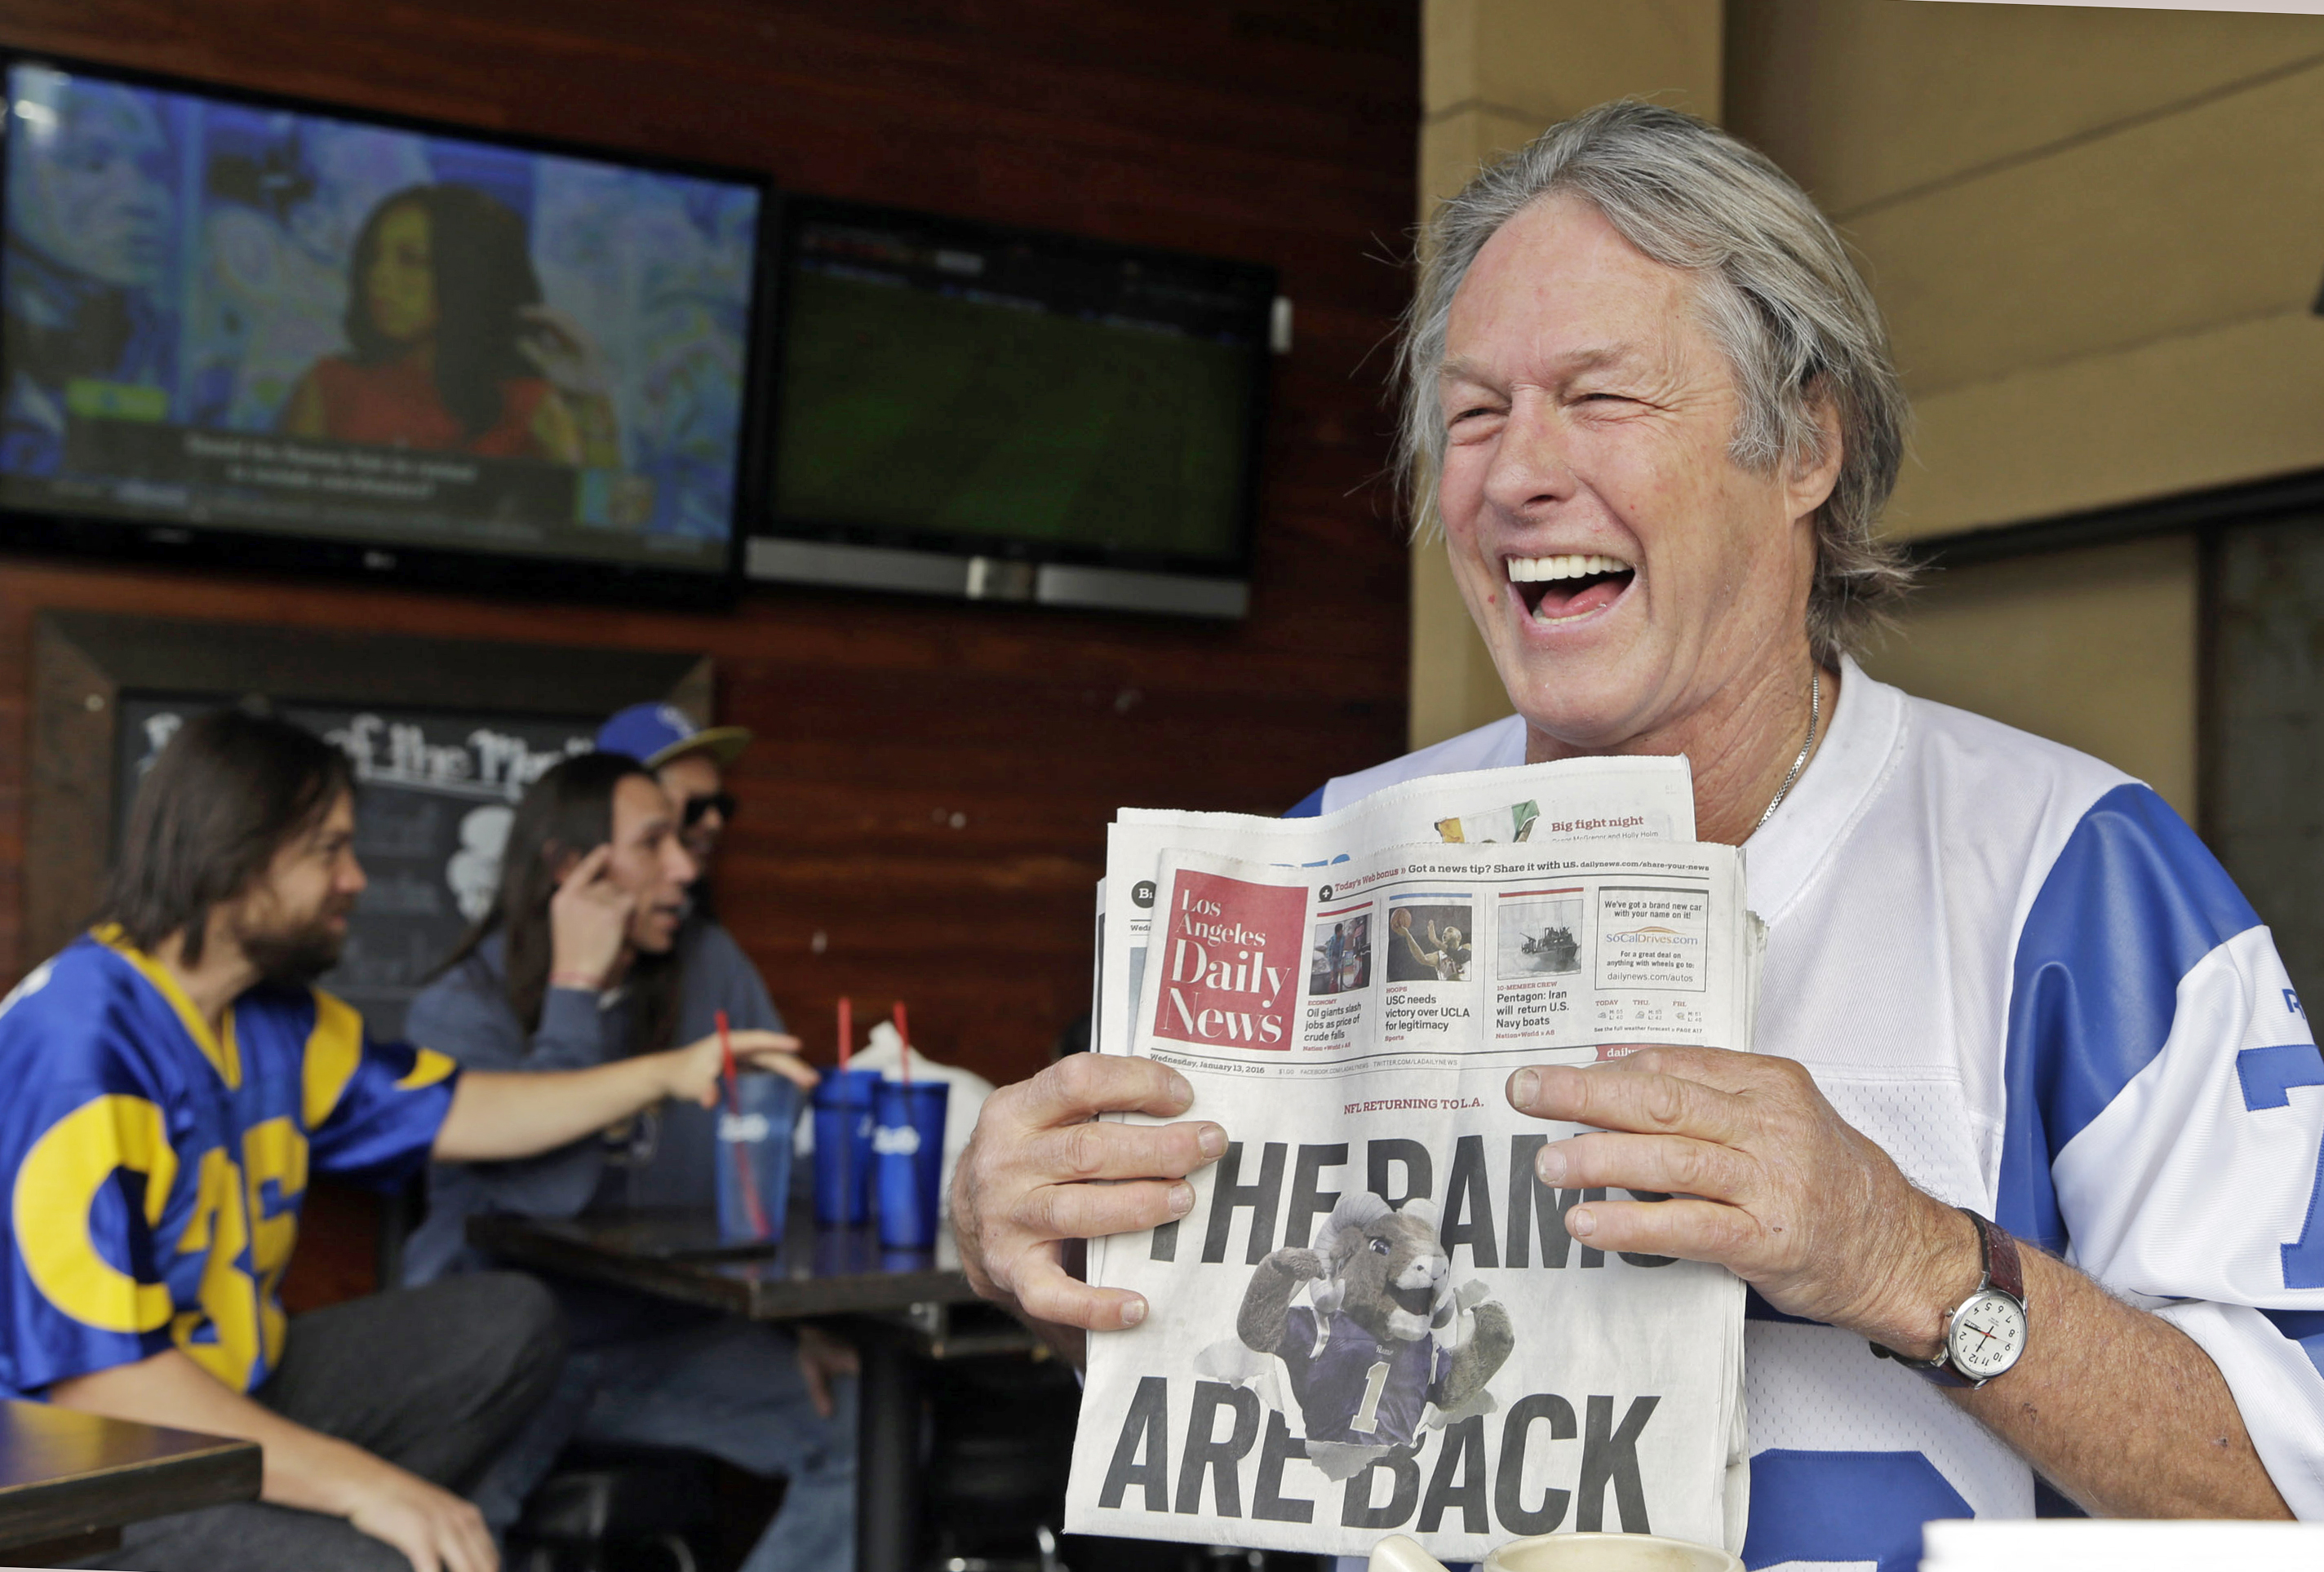 Rams fan Don Kirst holds a copy of the Los Angeles Daily News celebrating the impending return of the NFL football team to the Los Angeles area, at Big Wangs sports bar in the North Hollywood area of Los Angeles on Wednesday, Jan. 13, 2016. League owners